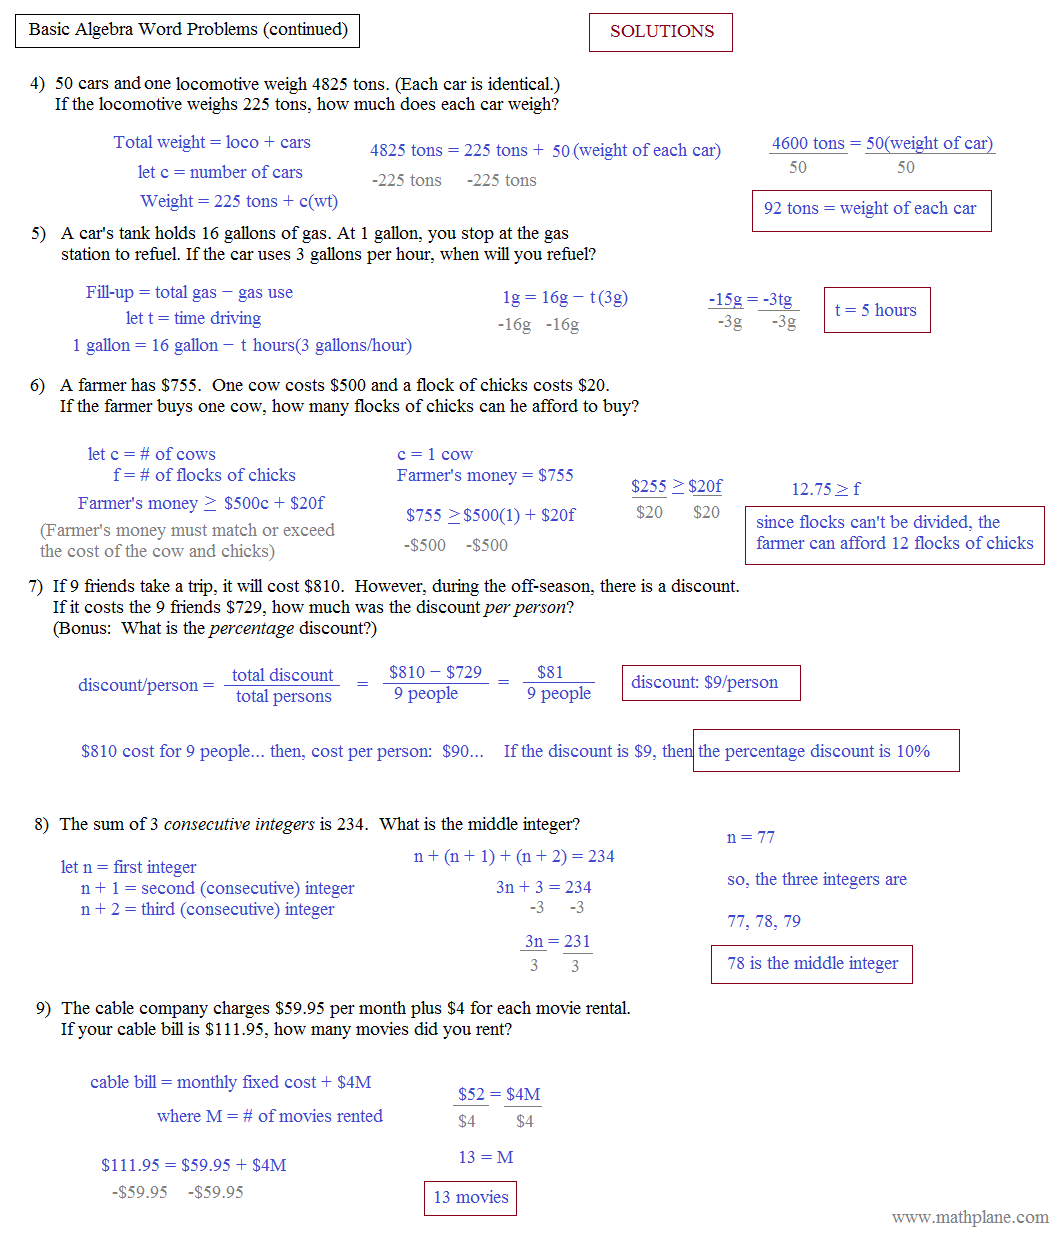 Free Worksheet Exponential Word Problems Worksheet math plane algebra word problems basic 2 solutions